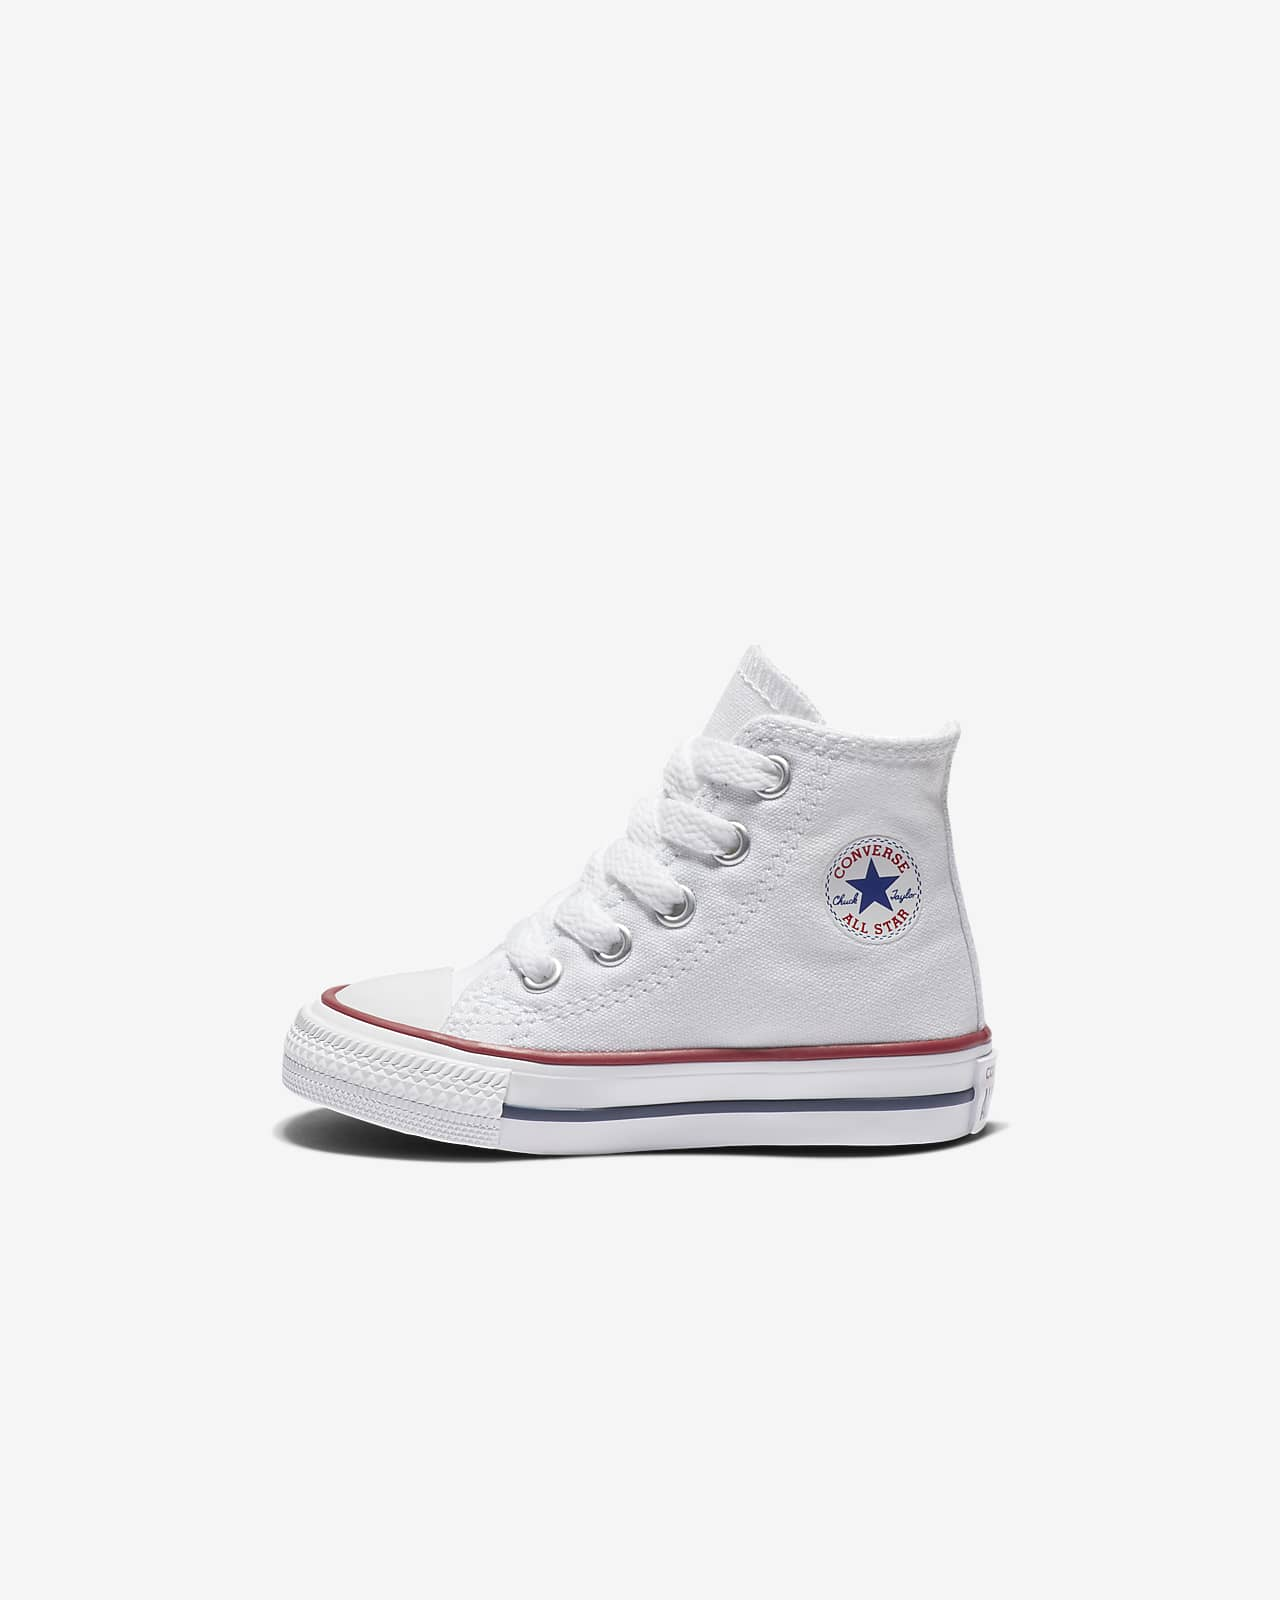 Converse Chuck Taylor All Star High Top (2c-10c) Infant/Toddler Shoe